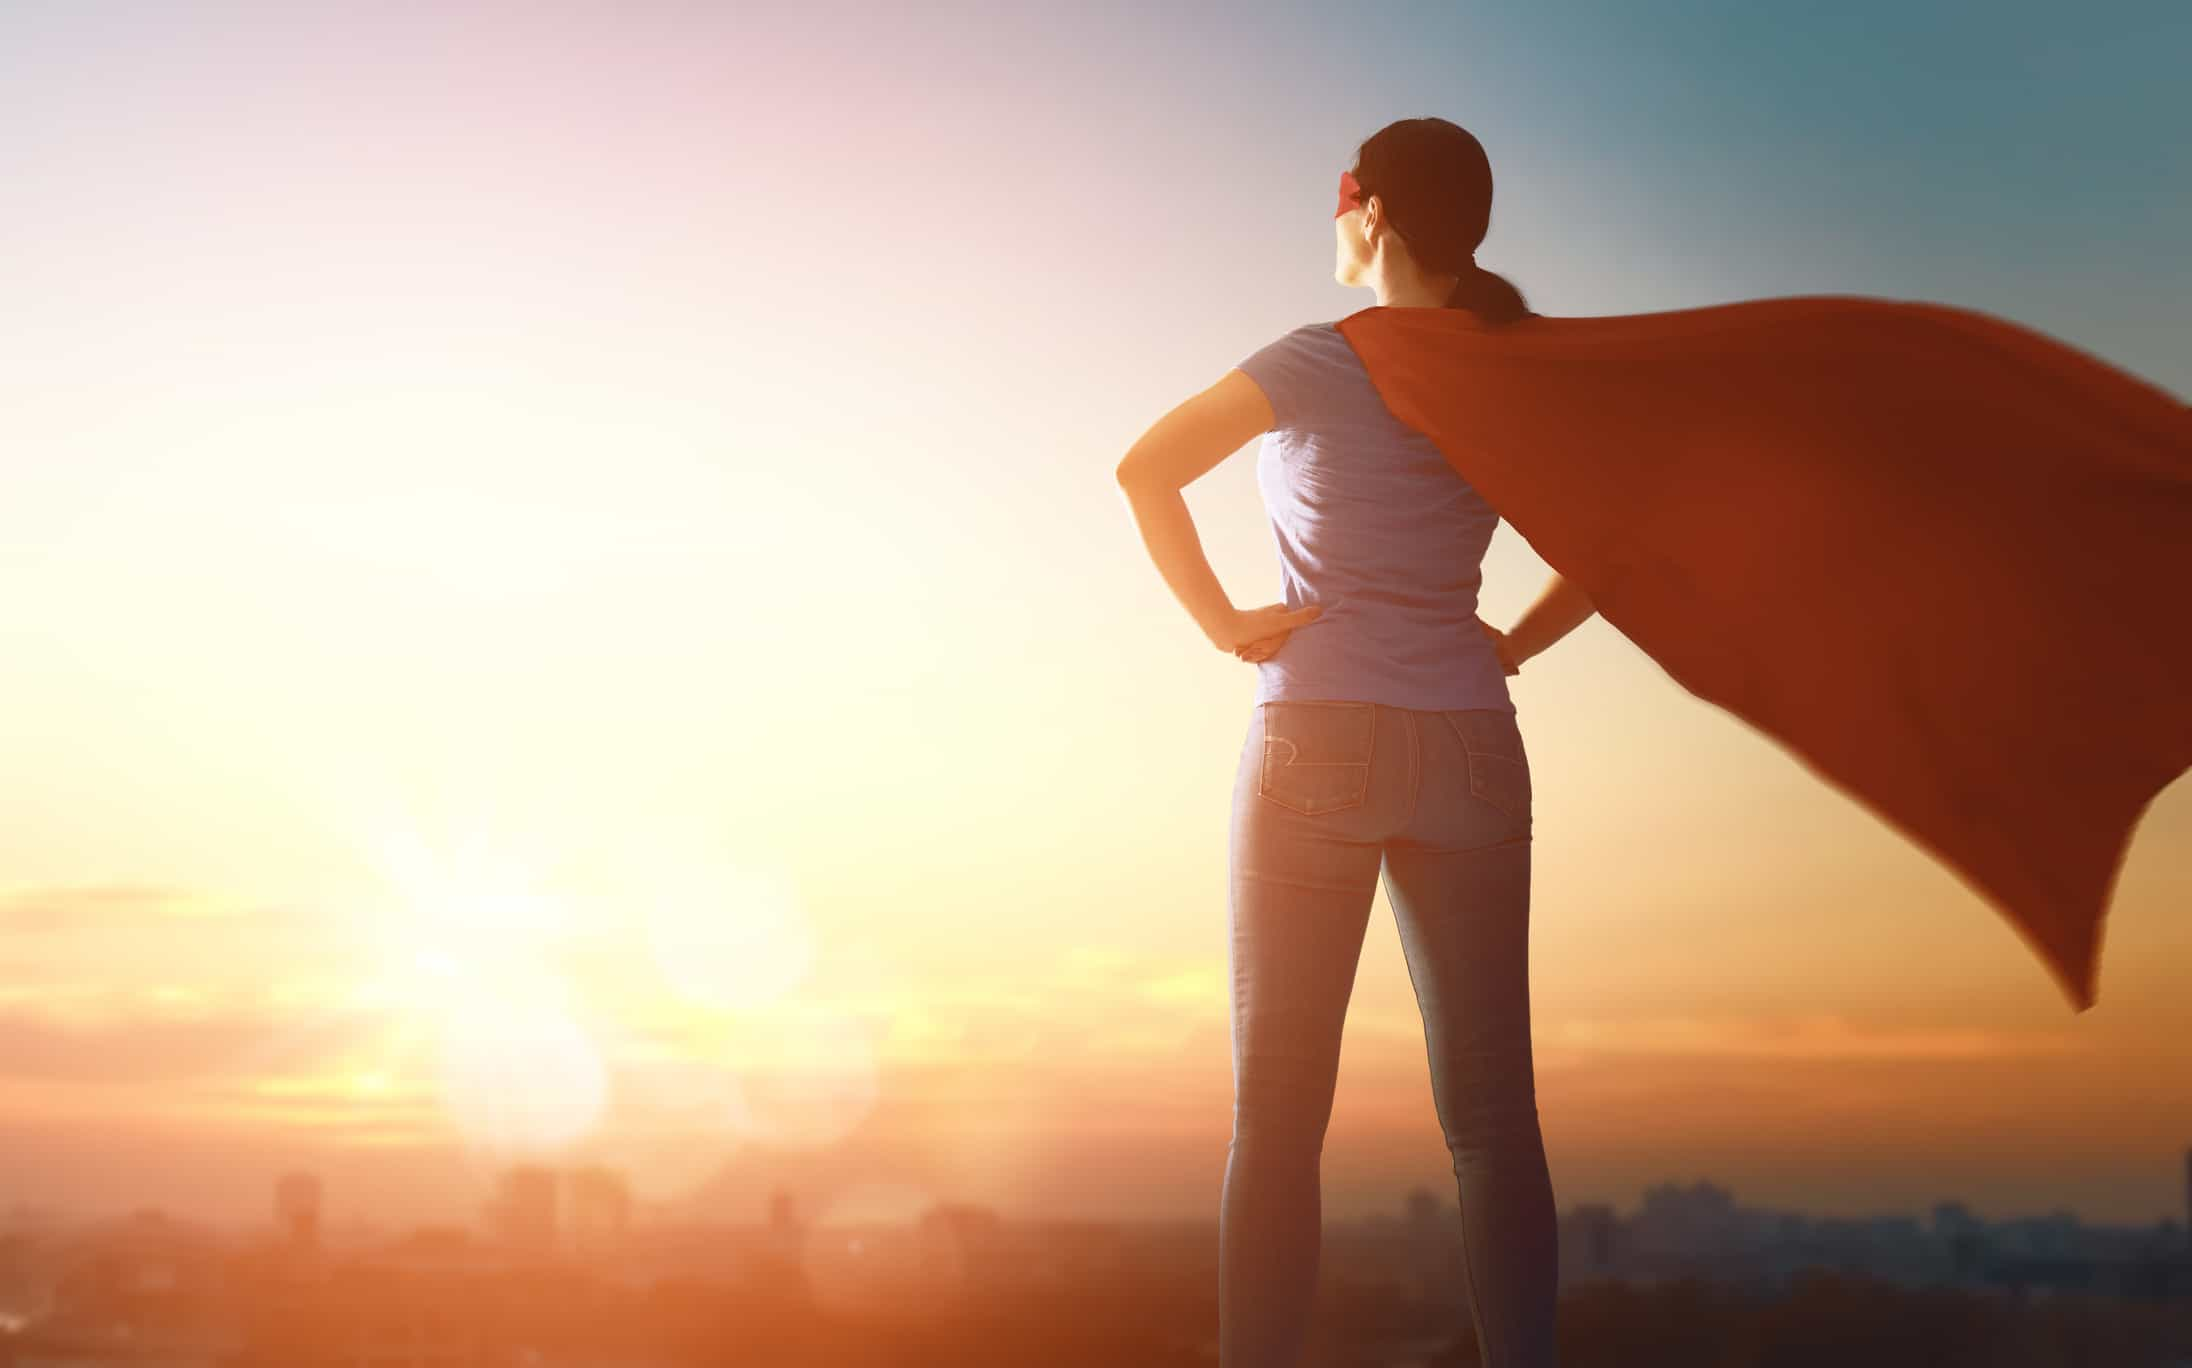 Woman superhero looking out across the cityscape